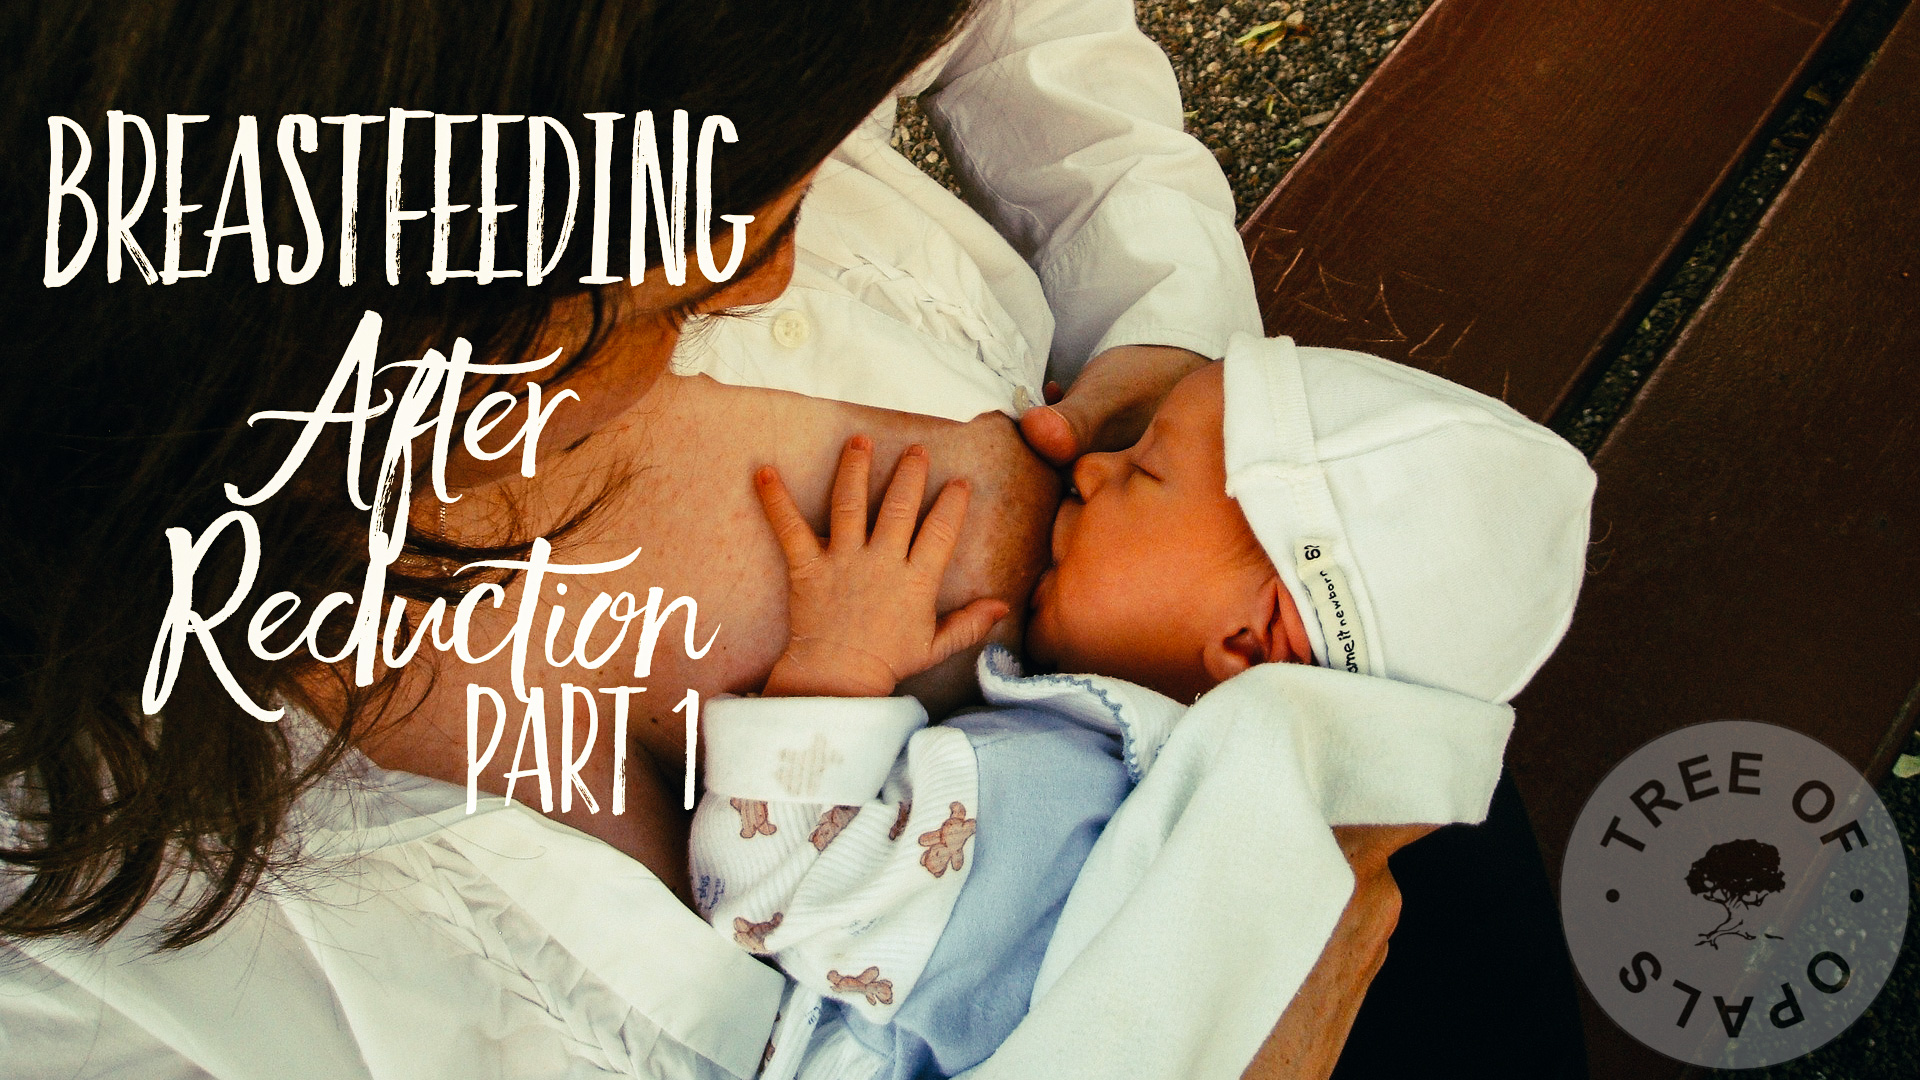 Breastfeeding after reduction story by Nic Kamminga at Tree of Opals